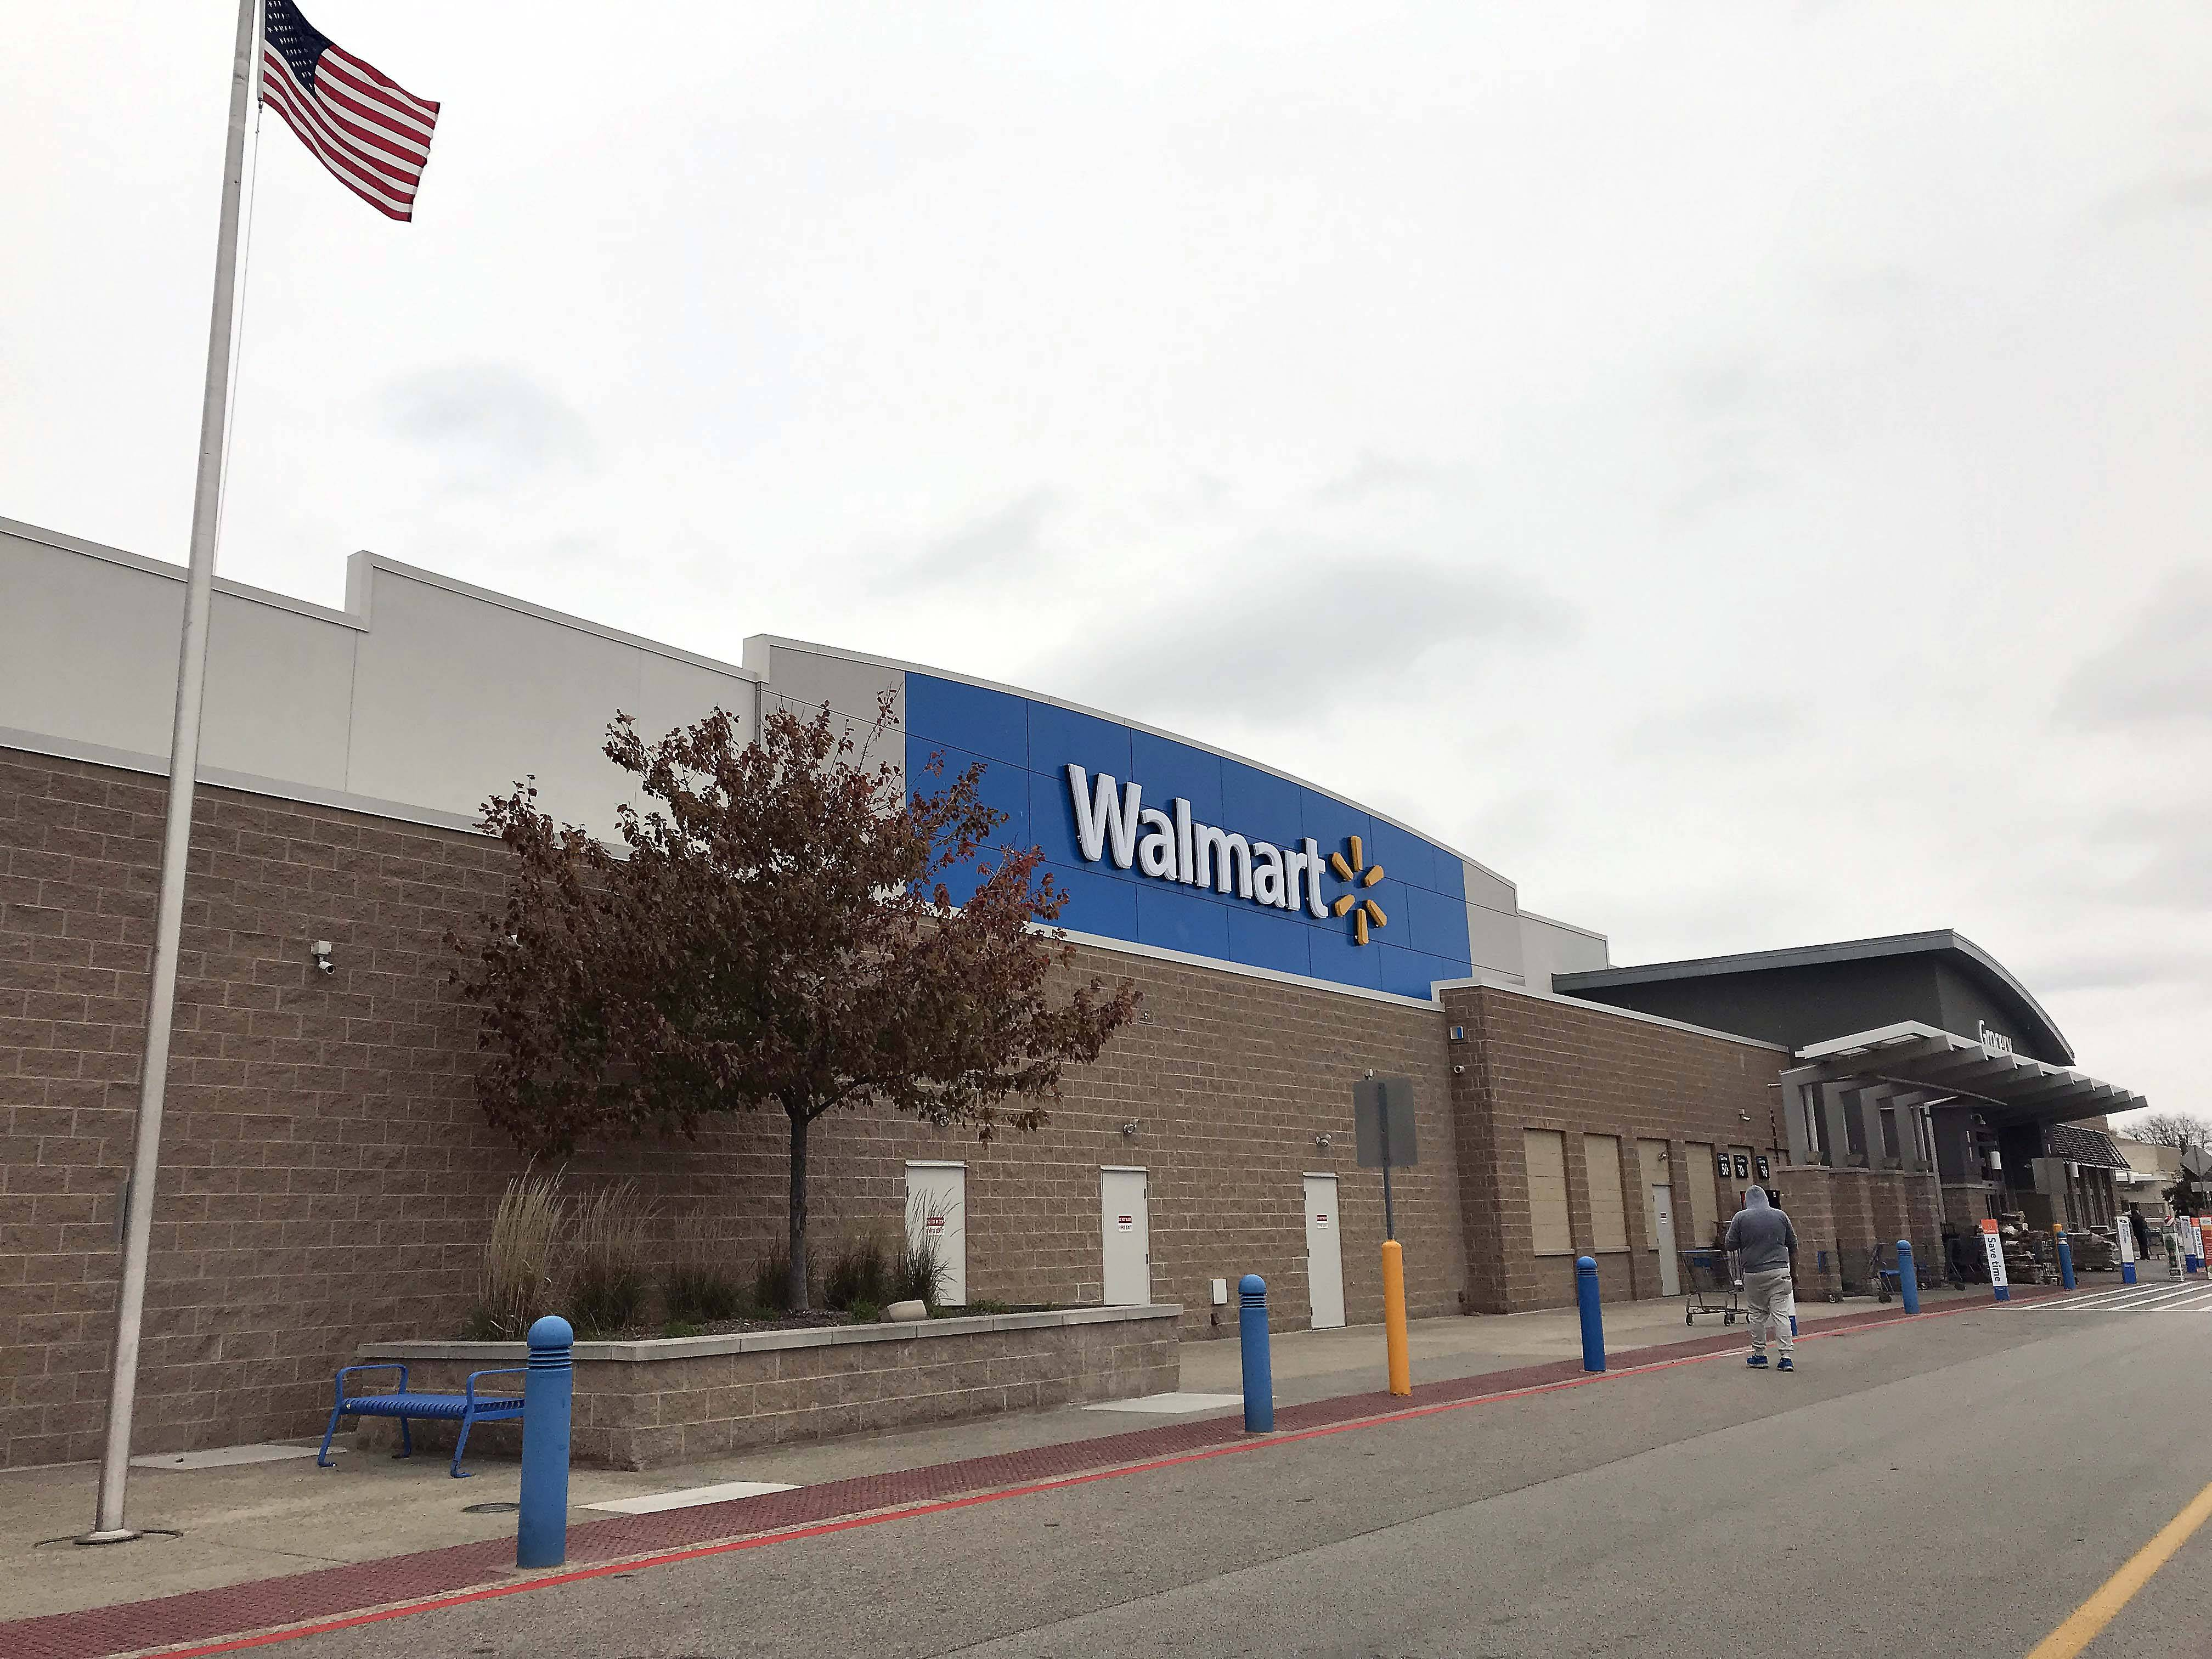 Elgin police are investigating a report from a 21-year-old Walmart employee who said two other employees locked her in a freezer Sunday.